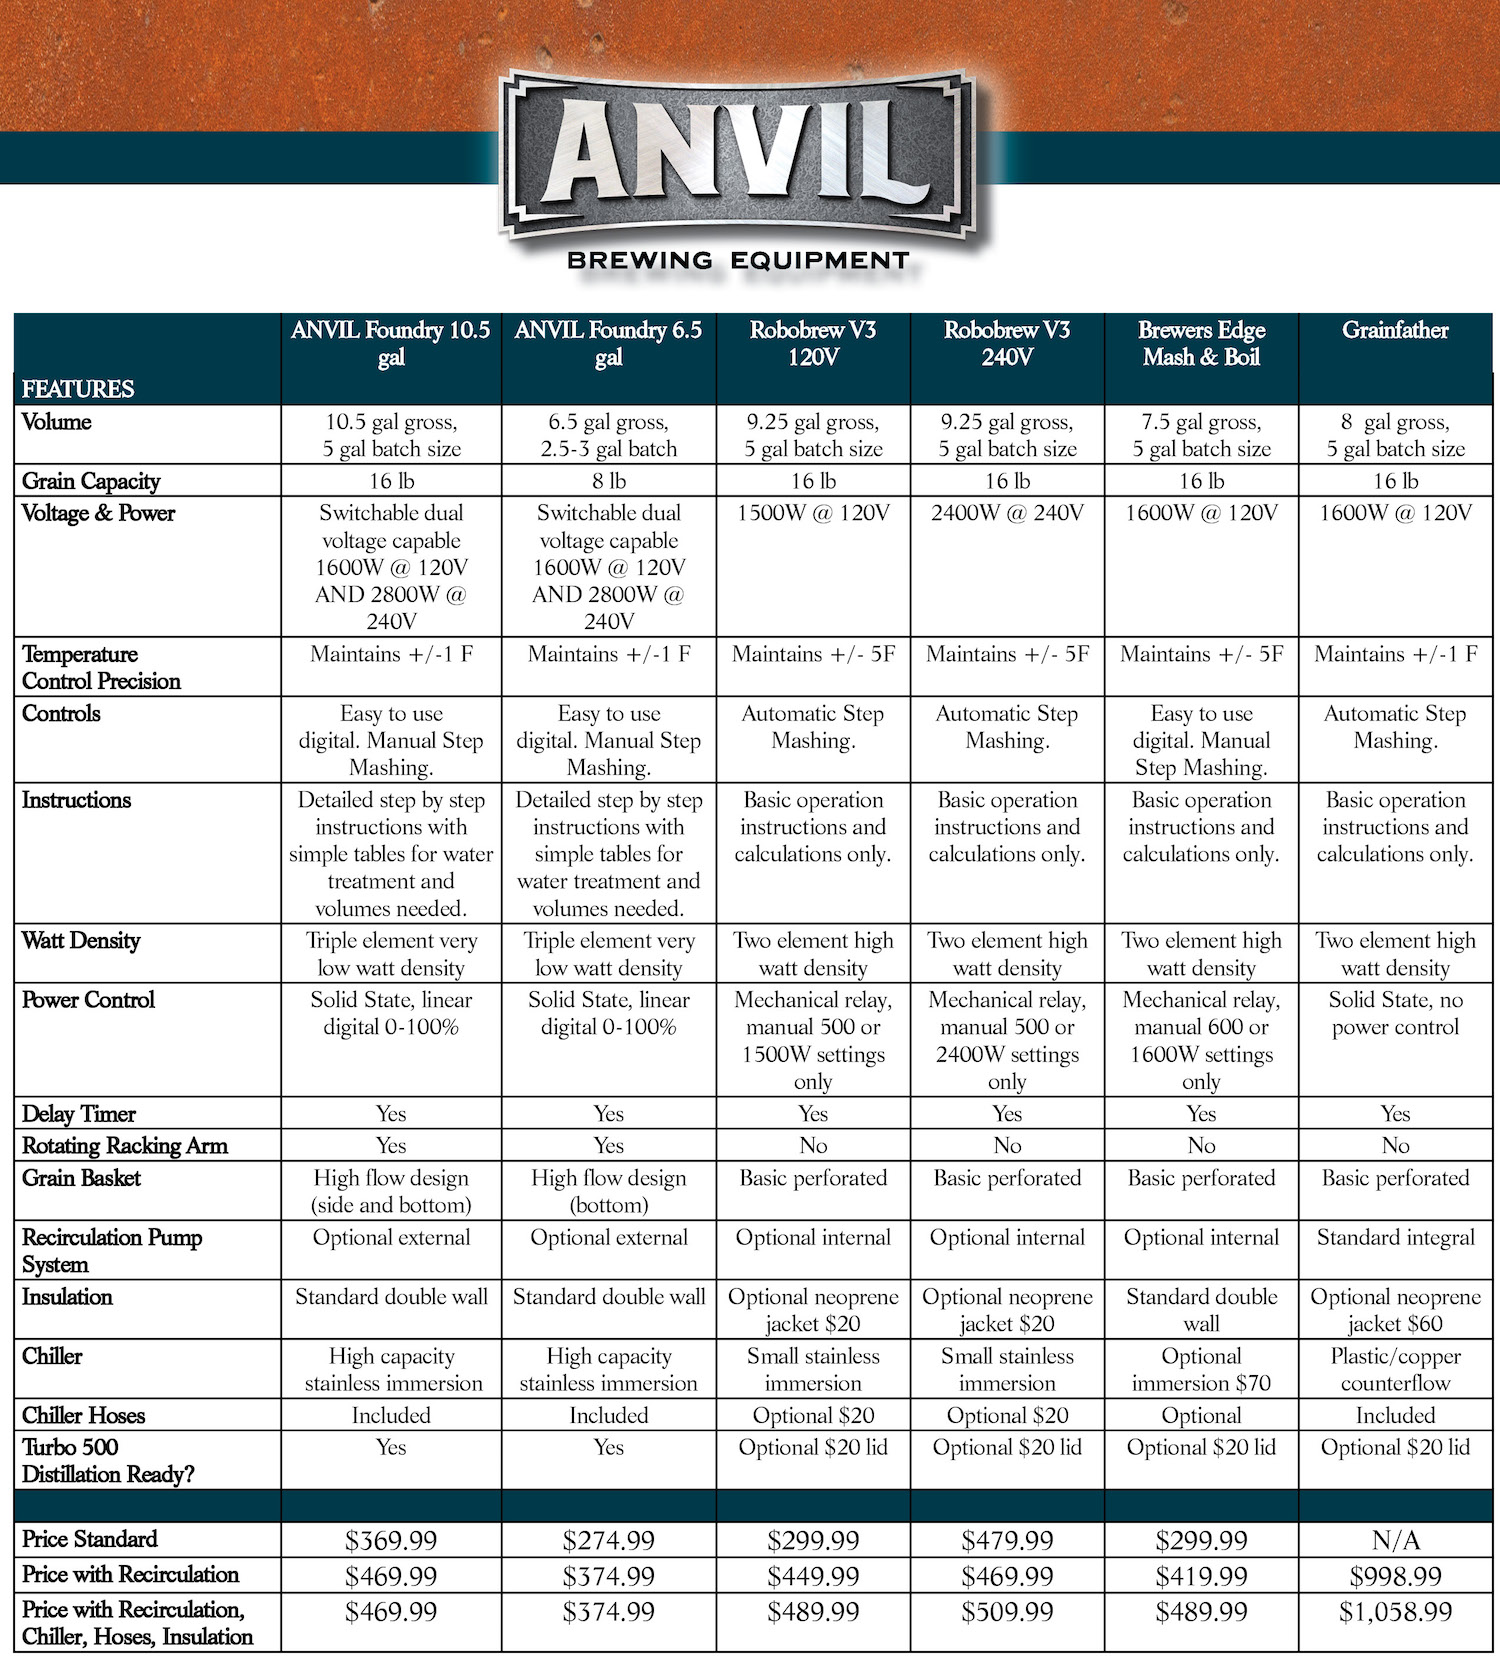 anv-foundrycomparisonchart.jpg